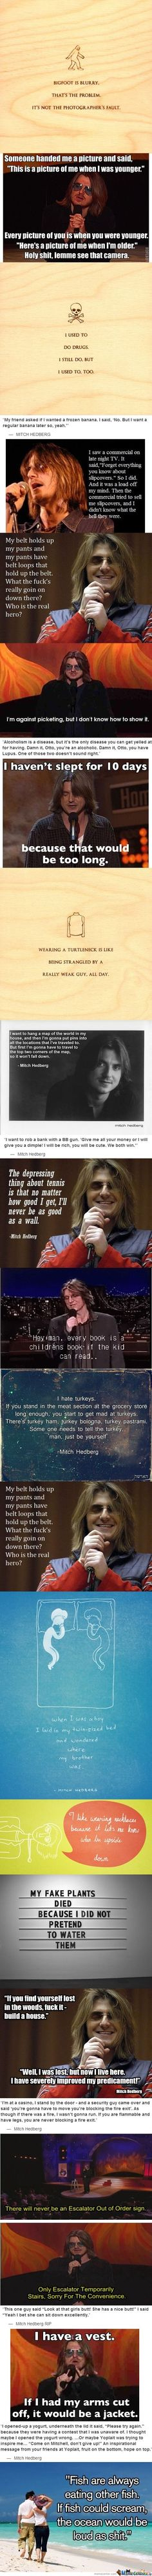 Mitch Hedberg, RIP. Hope you're not offended by cussing...